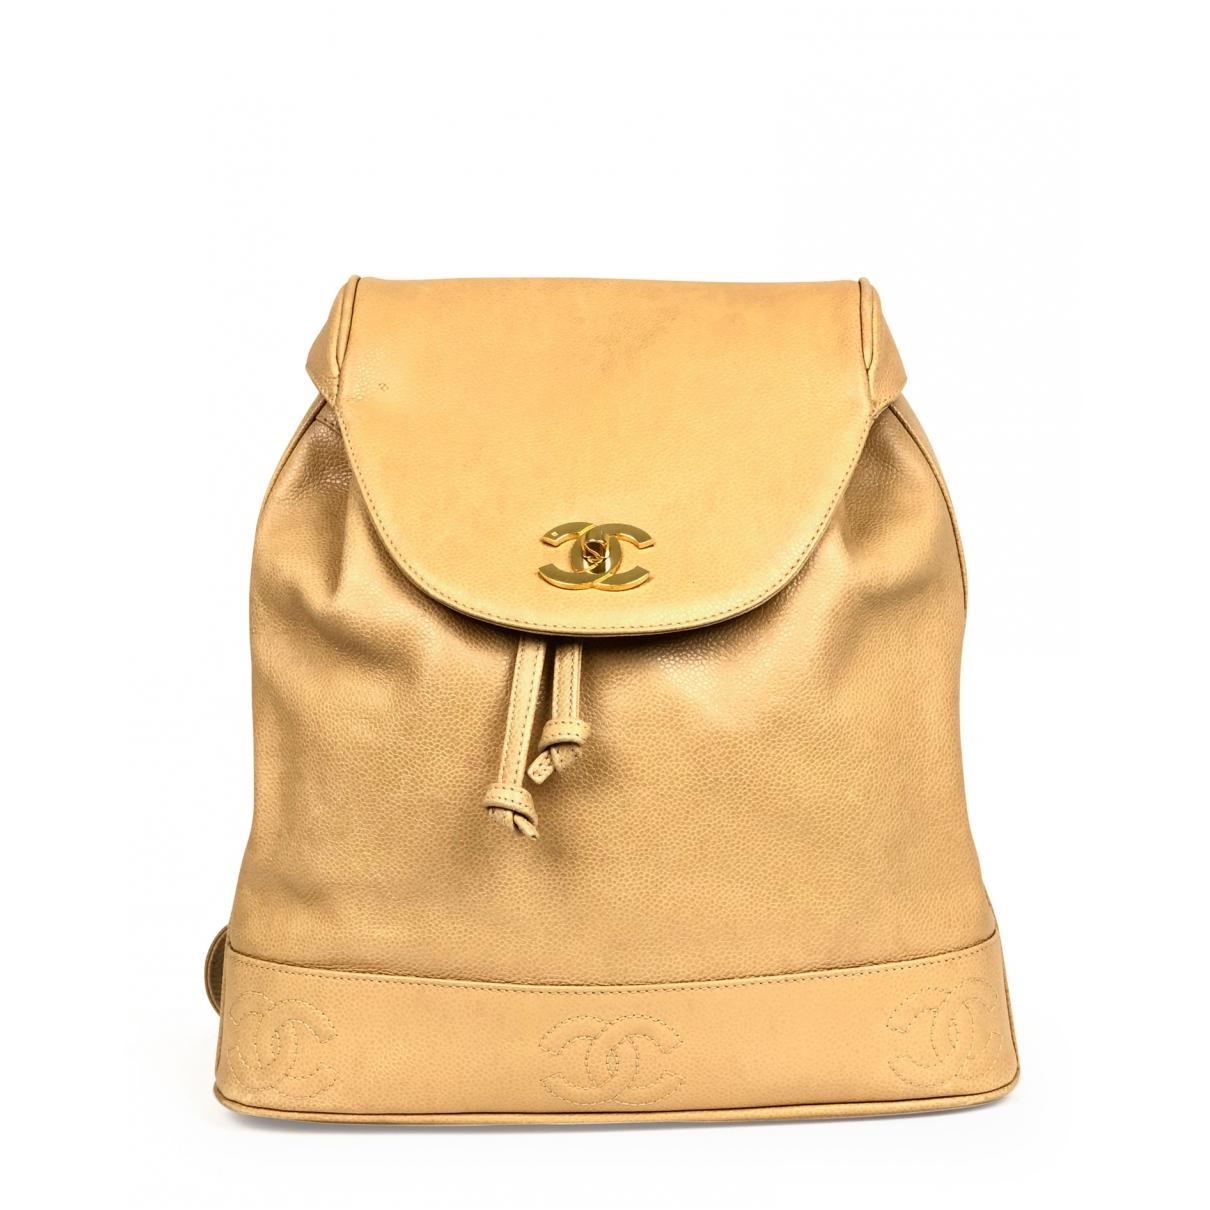 528f0a5a45bf Chanel. Women's Natural Vintage Beige Leather Backpacks. £1,705 From Vestiaire  Collective